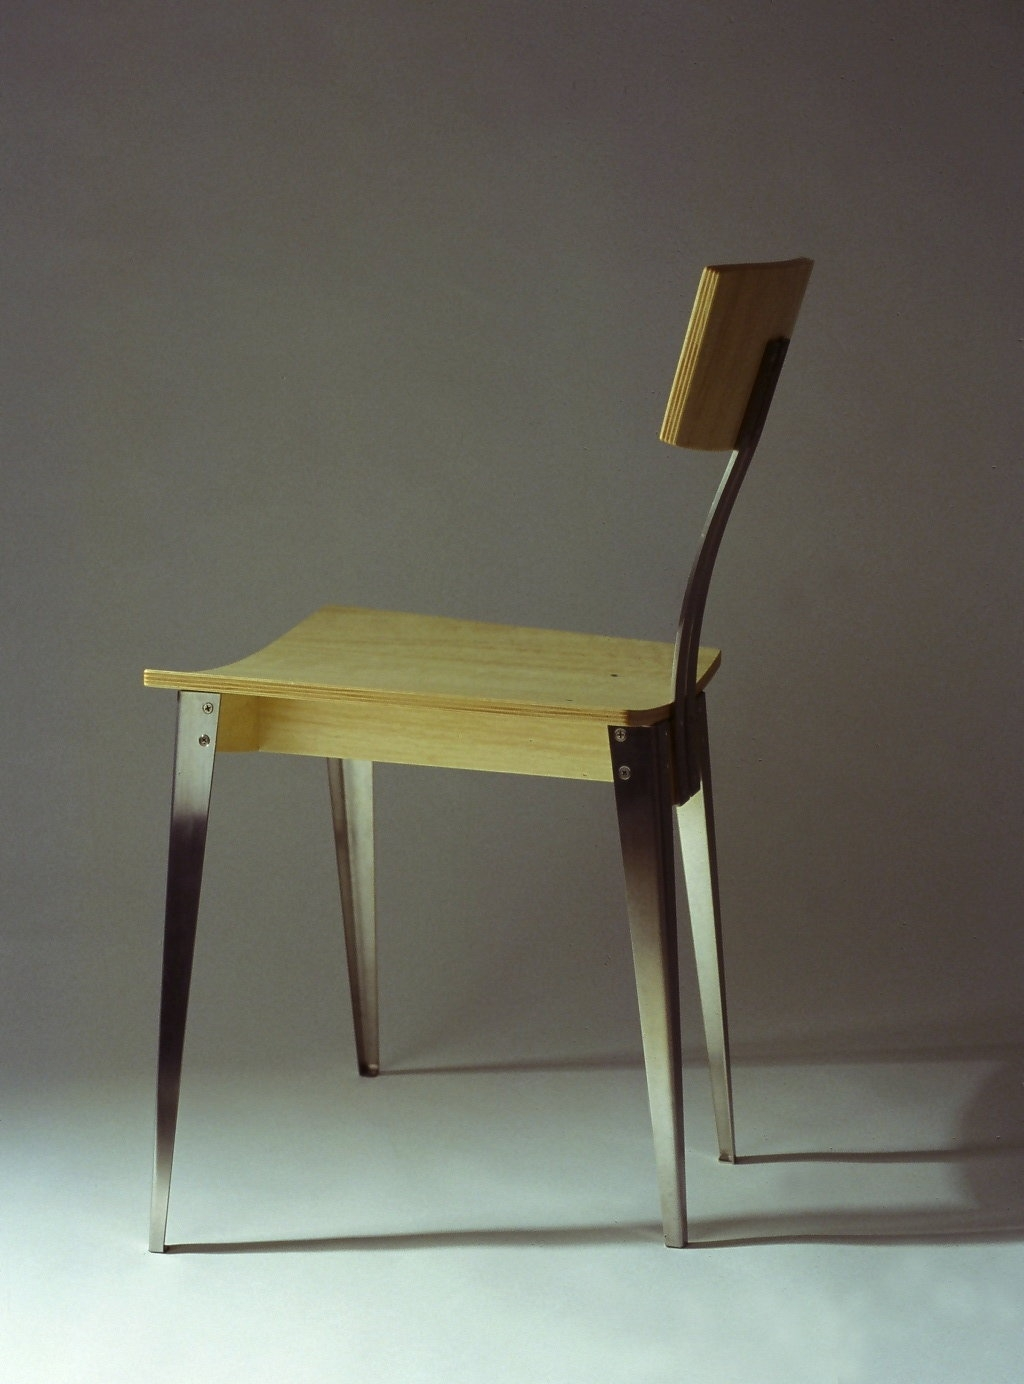 stab chair image.JPG